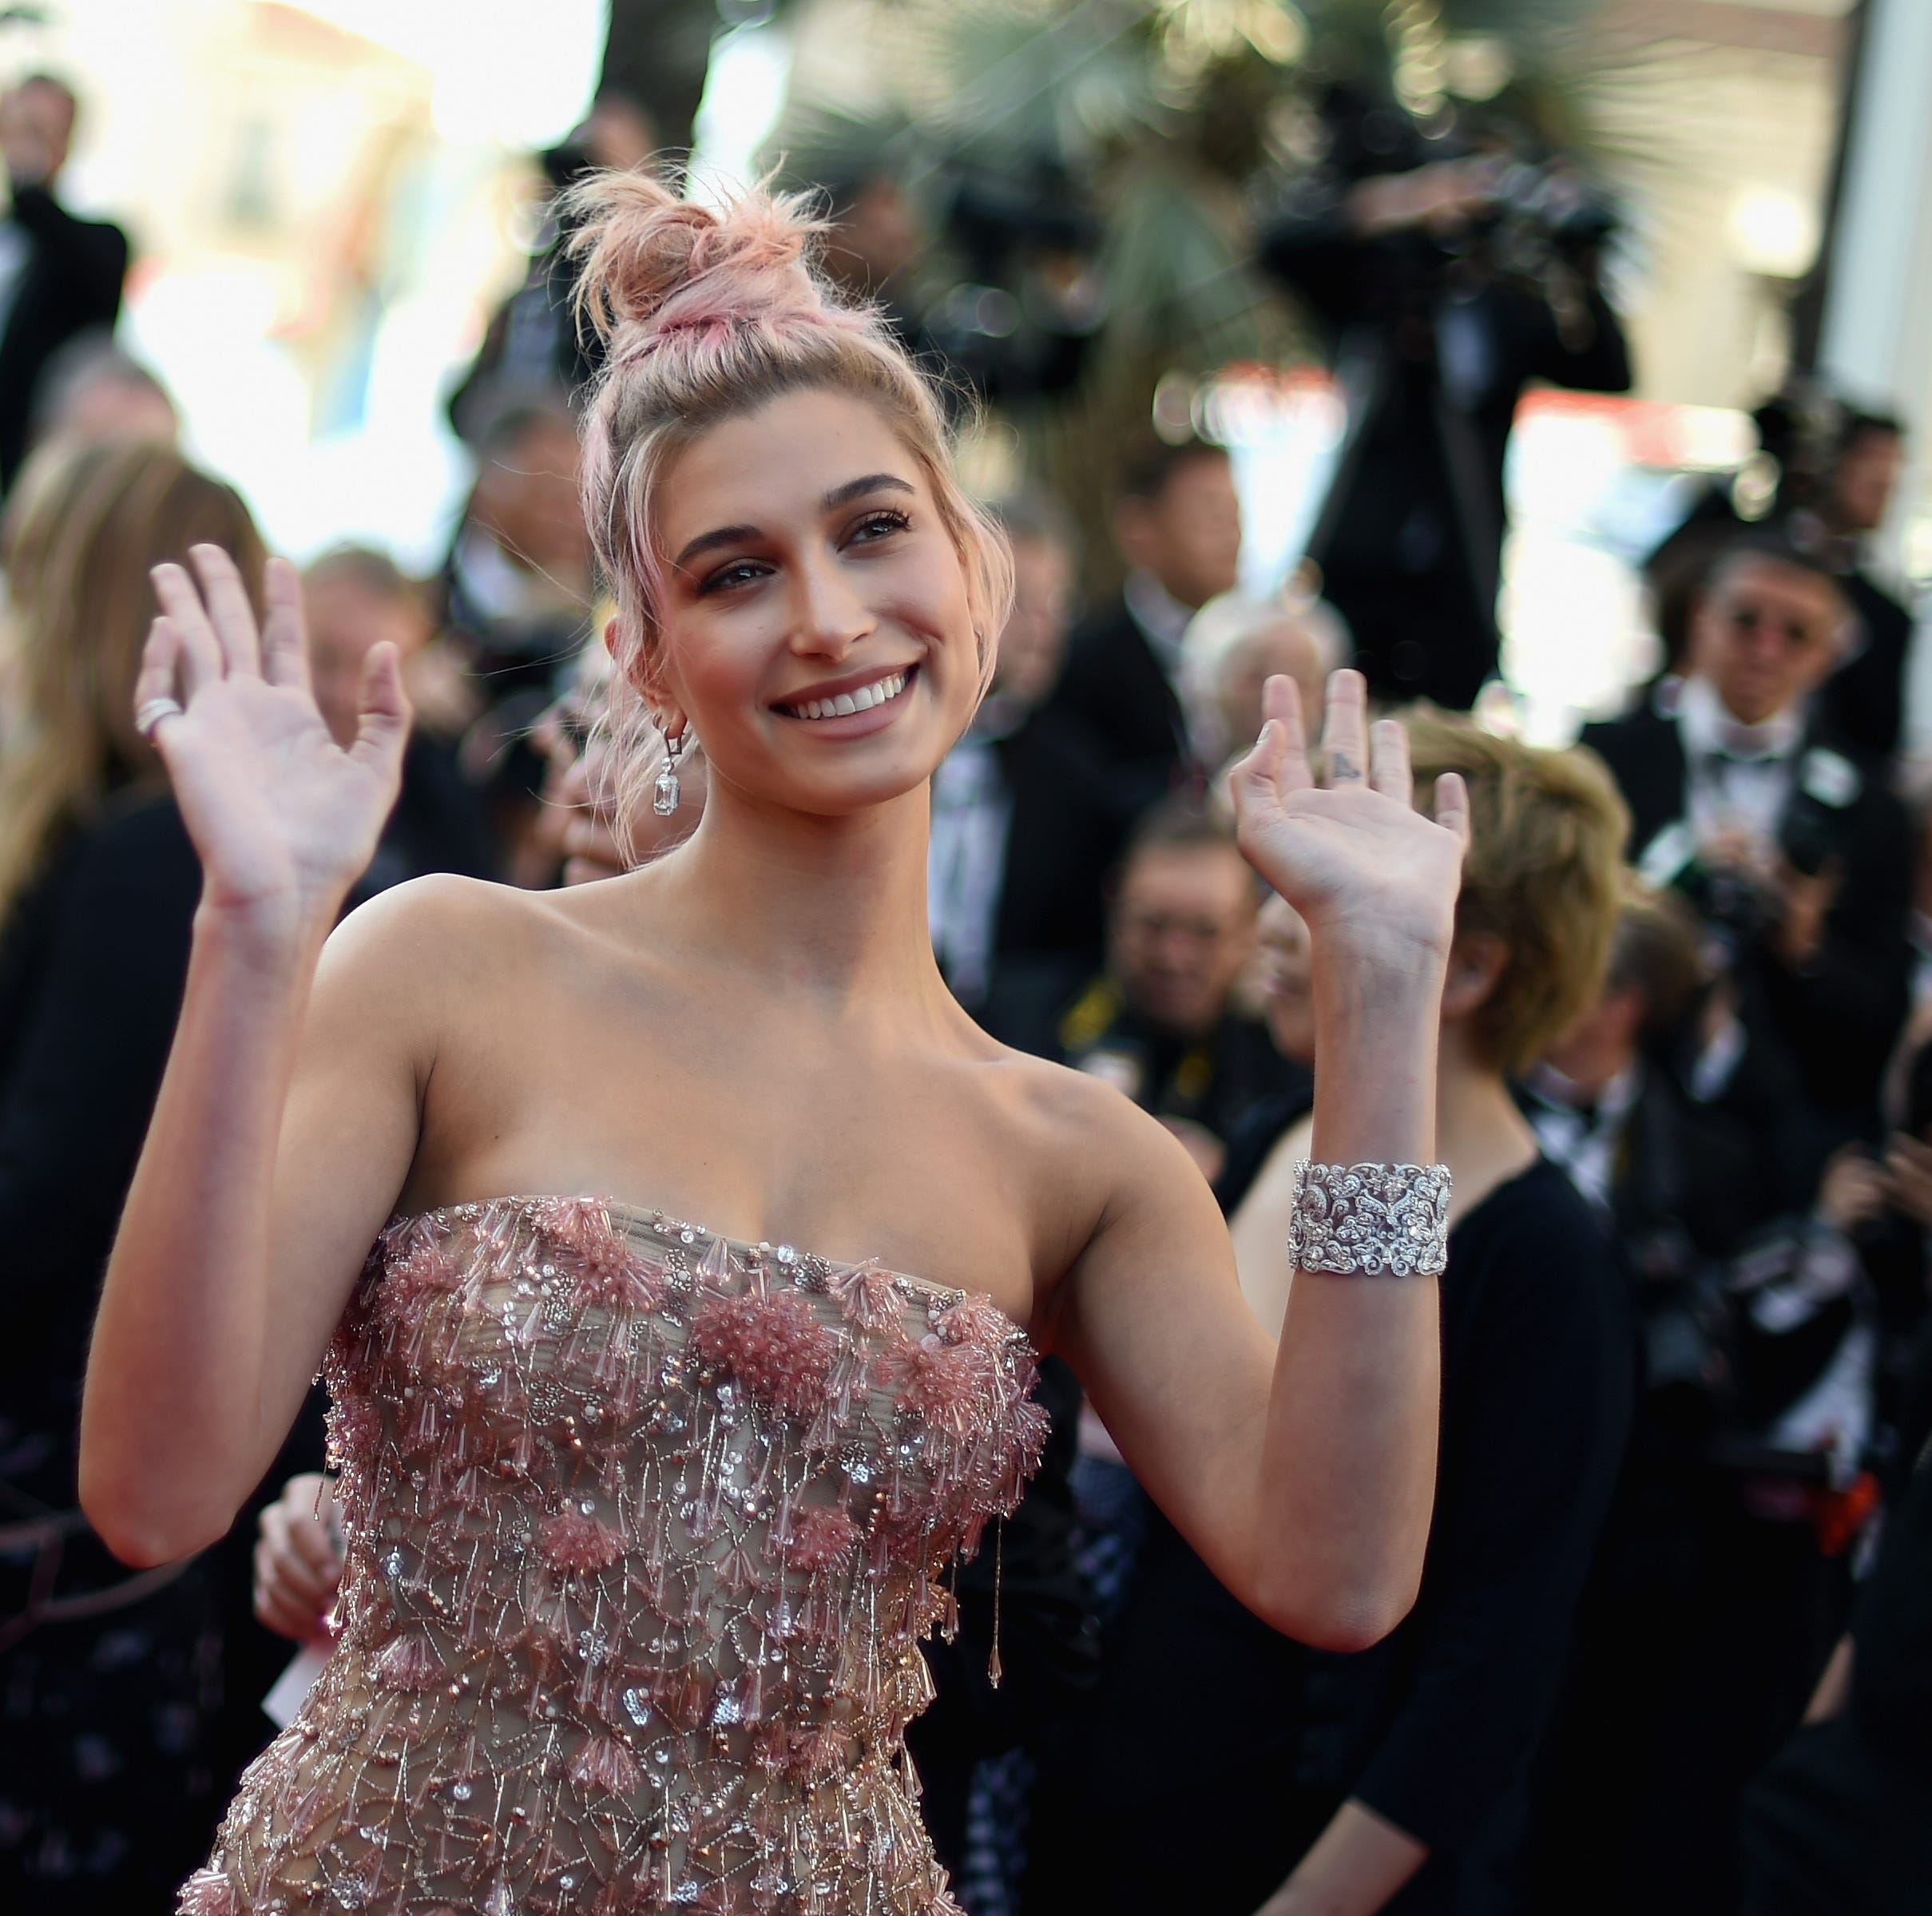 Did Hailey Baldwin inspire lyrics in new Ed Sheeran-Justin Bieber single, 'I Don't Care'?